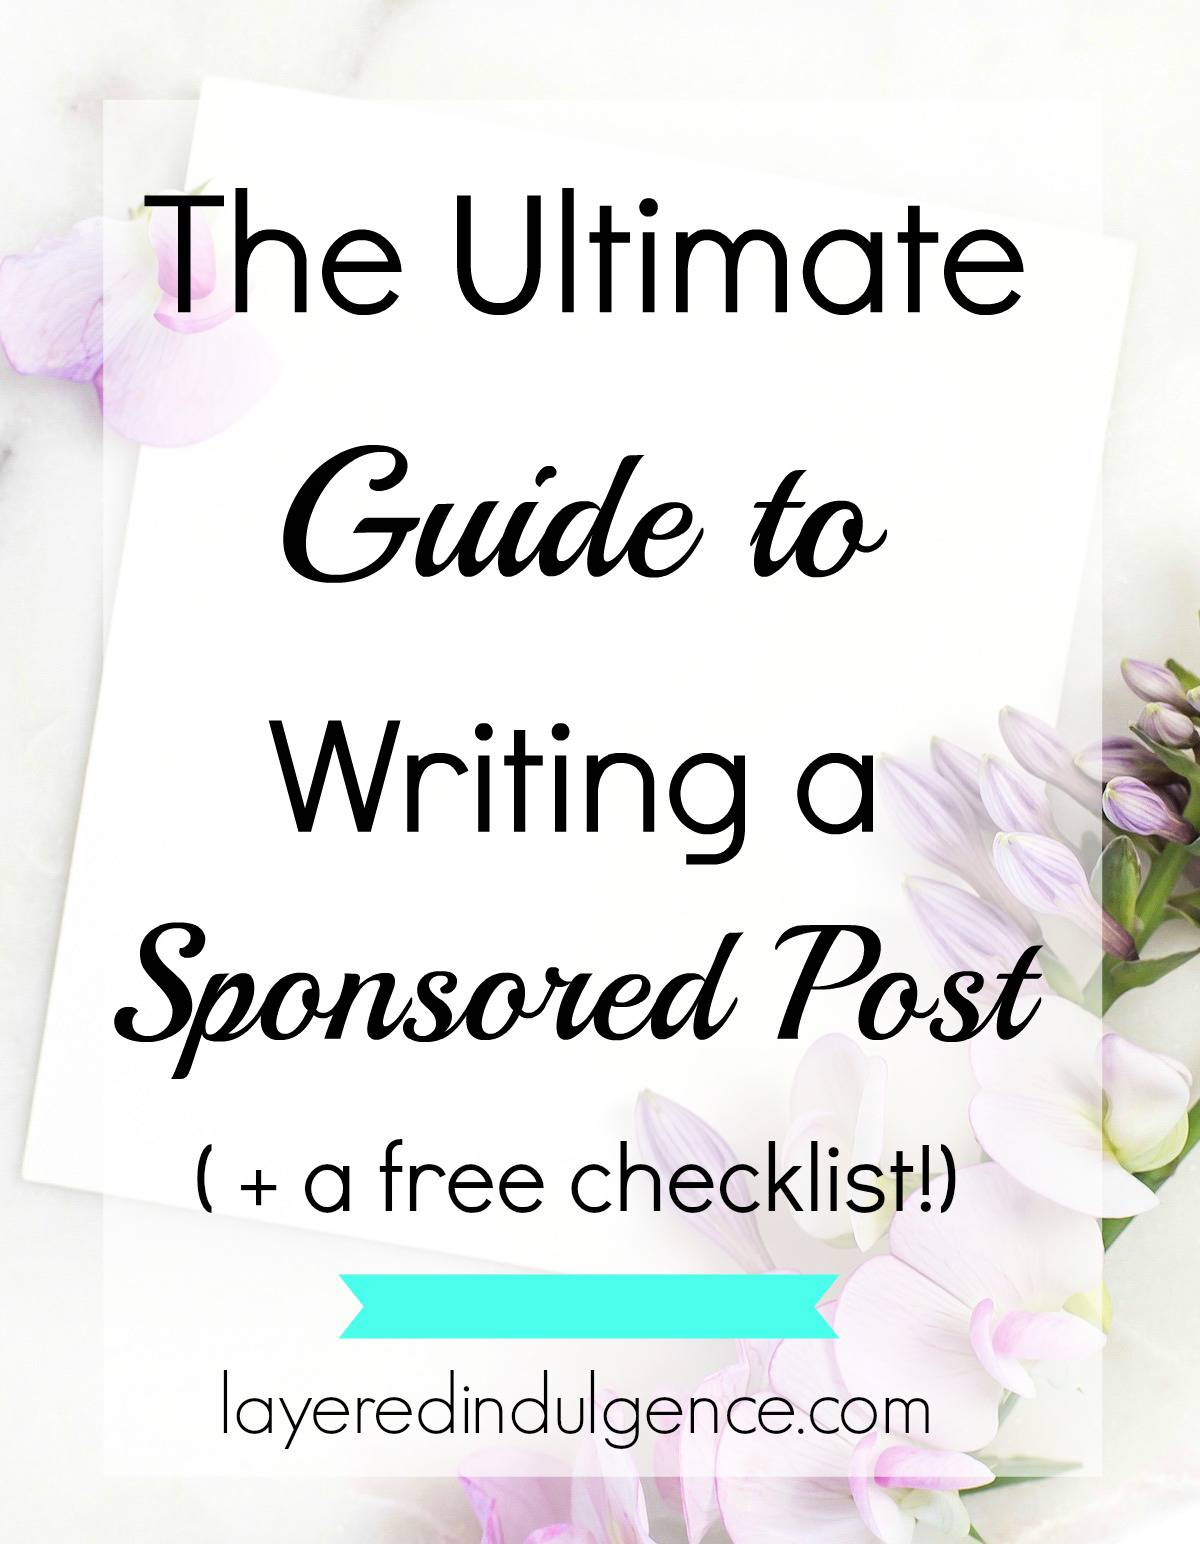 The Ultimate Guide to Writing Sponsored Posts: Are you a blogger who's interested in how to get sponsored posts? Sponsored posts are a great way to try out awesome products and make money from your blog! But there's a certain way to go about writing awesome sponsored content and I'm spilling all my best tips! Click through to read this post now or save it for later! I also made you a handy checklist so you can rock your sponsored posts every time!